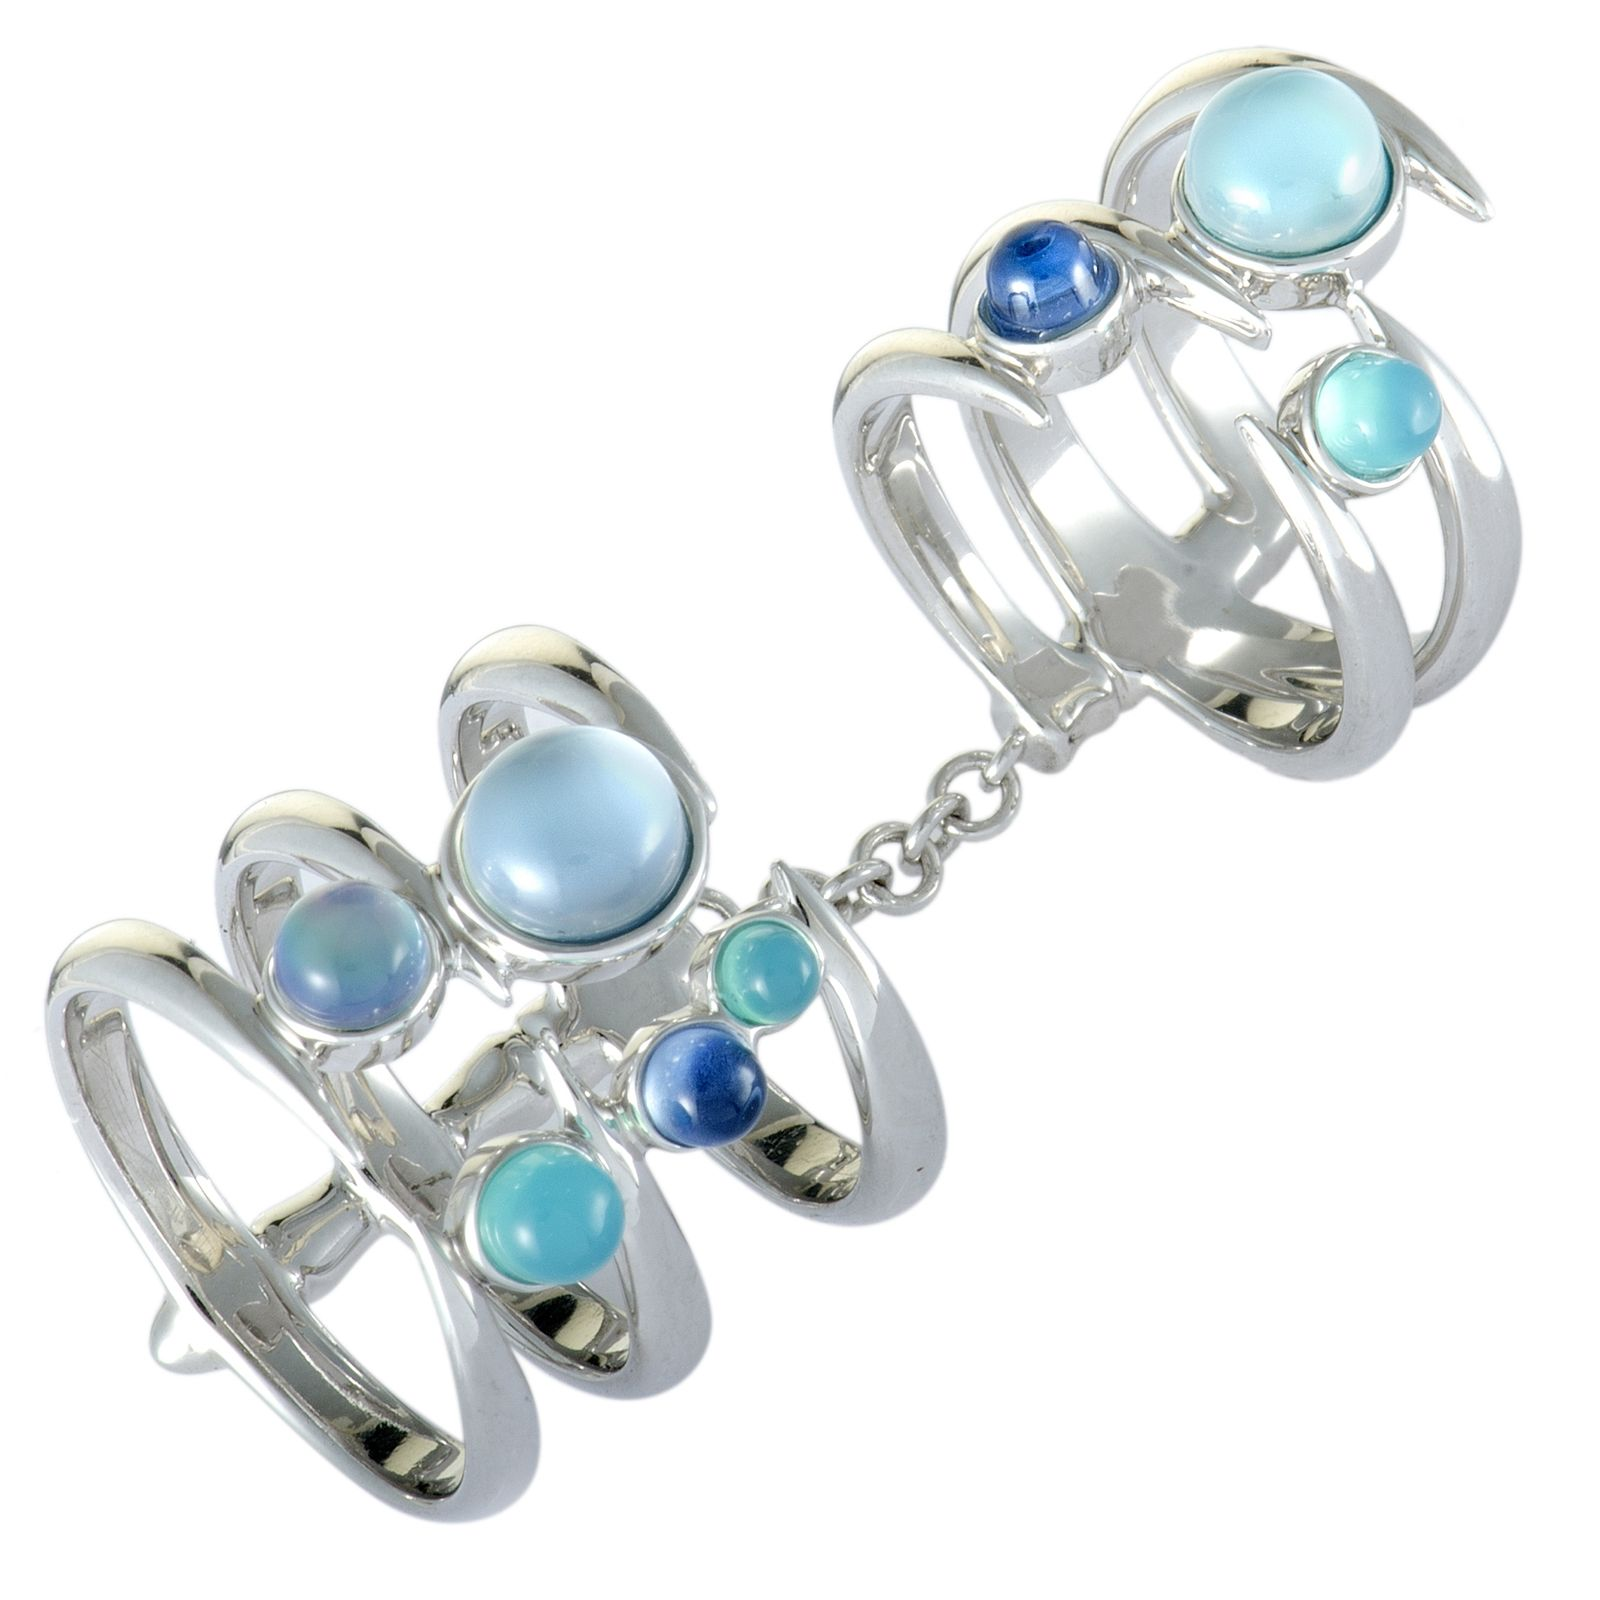 Stephen Webster Jewels Verne Silver Turquoise, Blue Agate, Lapis, Mother of Pearl